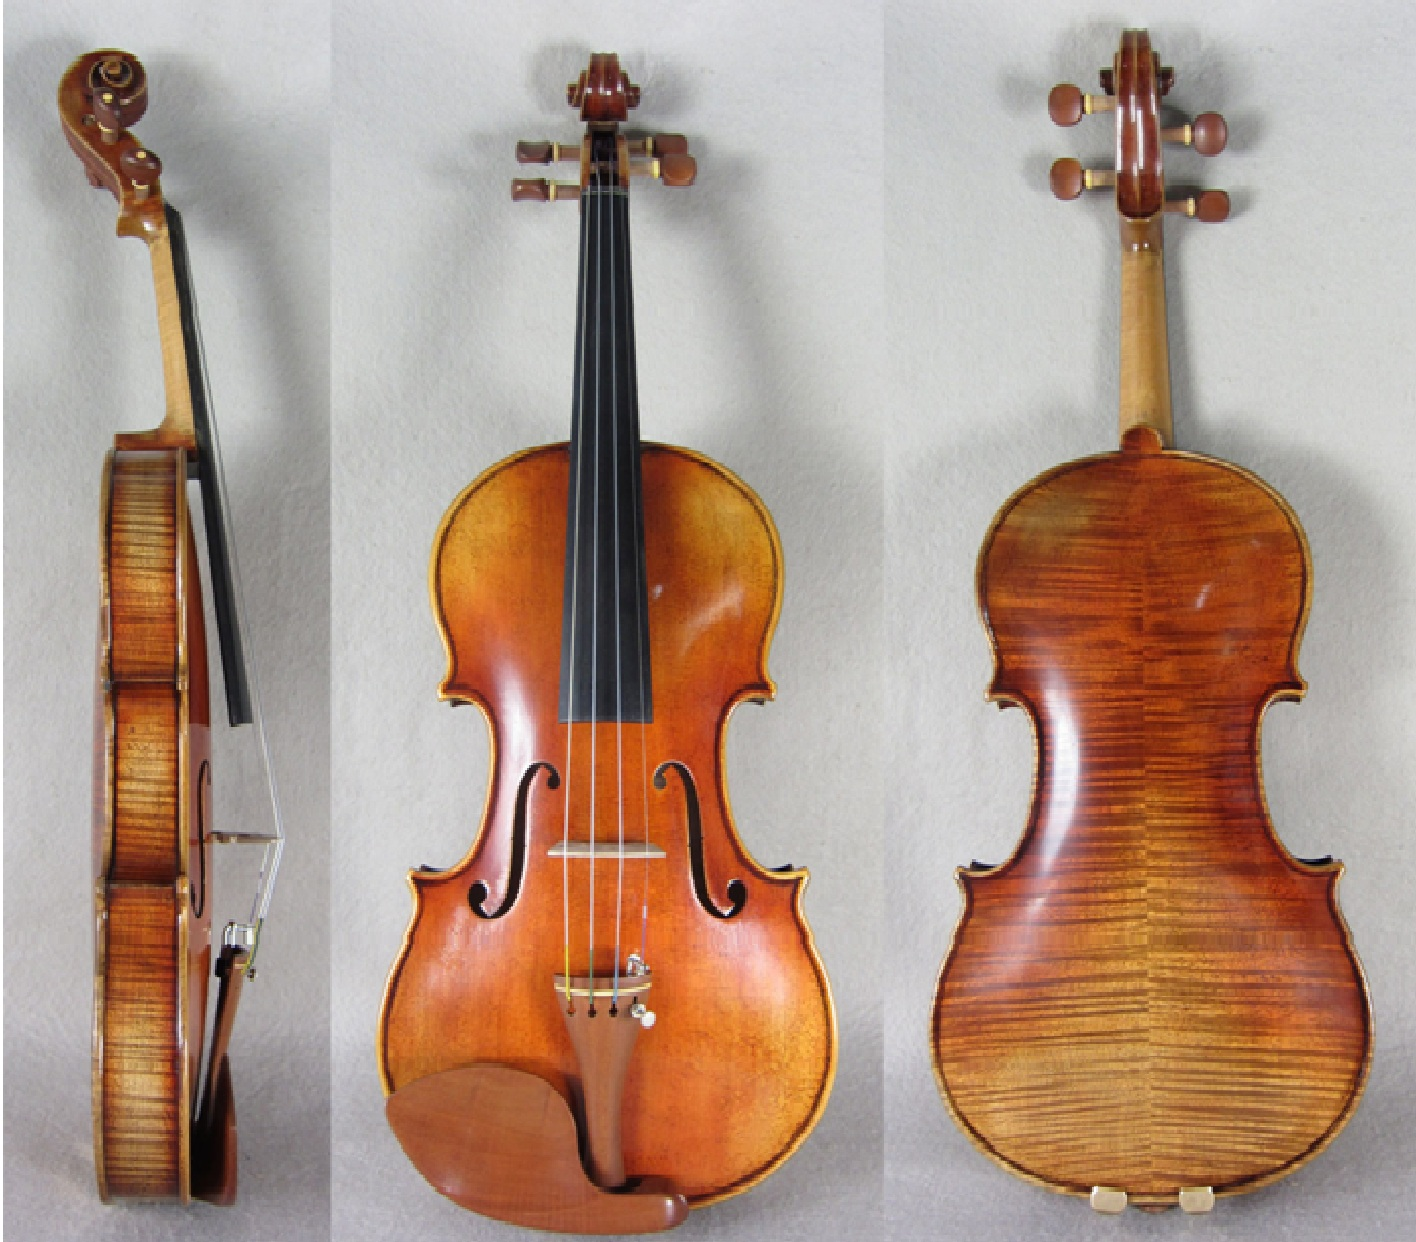 Soil strad austrian1 strings2u for Soil 1714 stradivarius